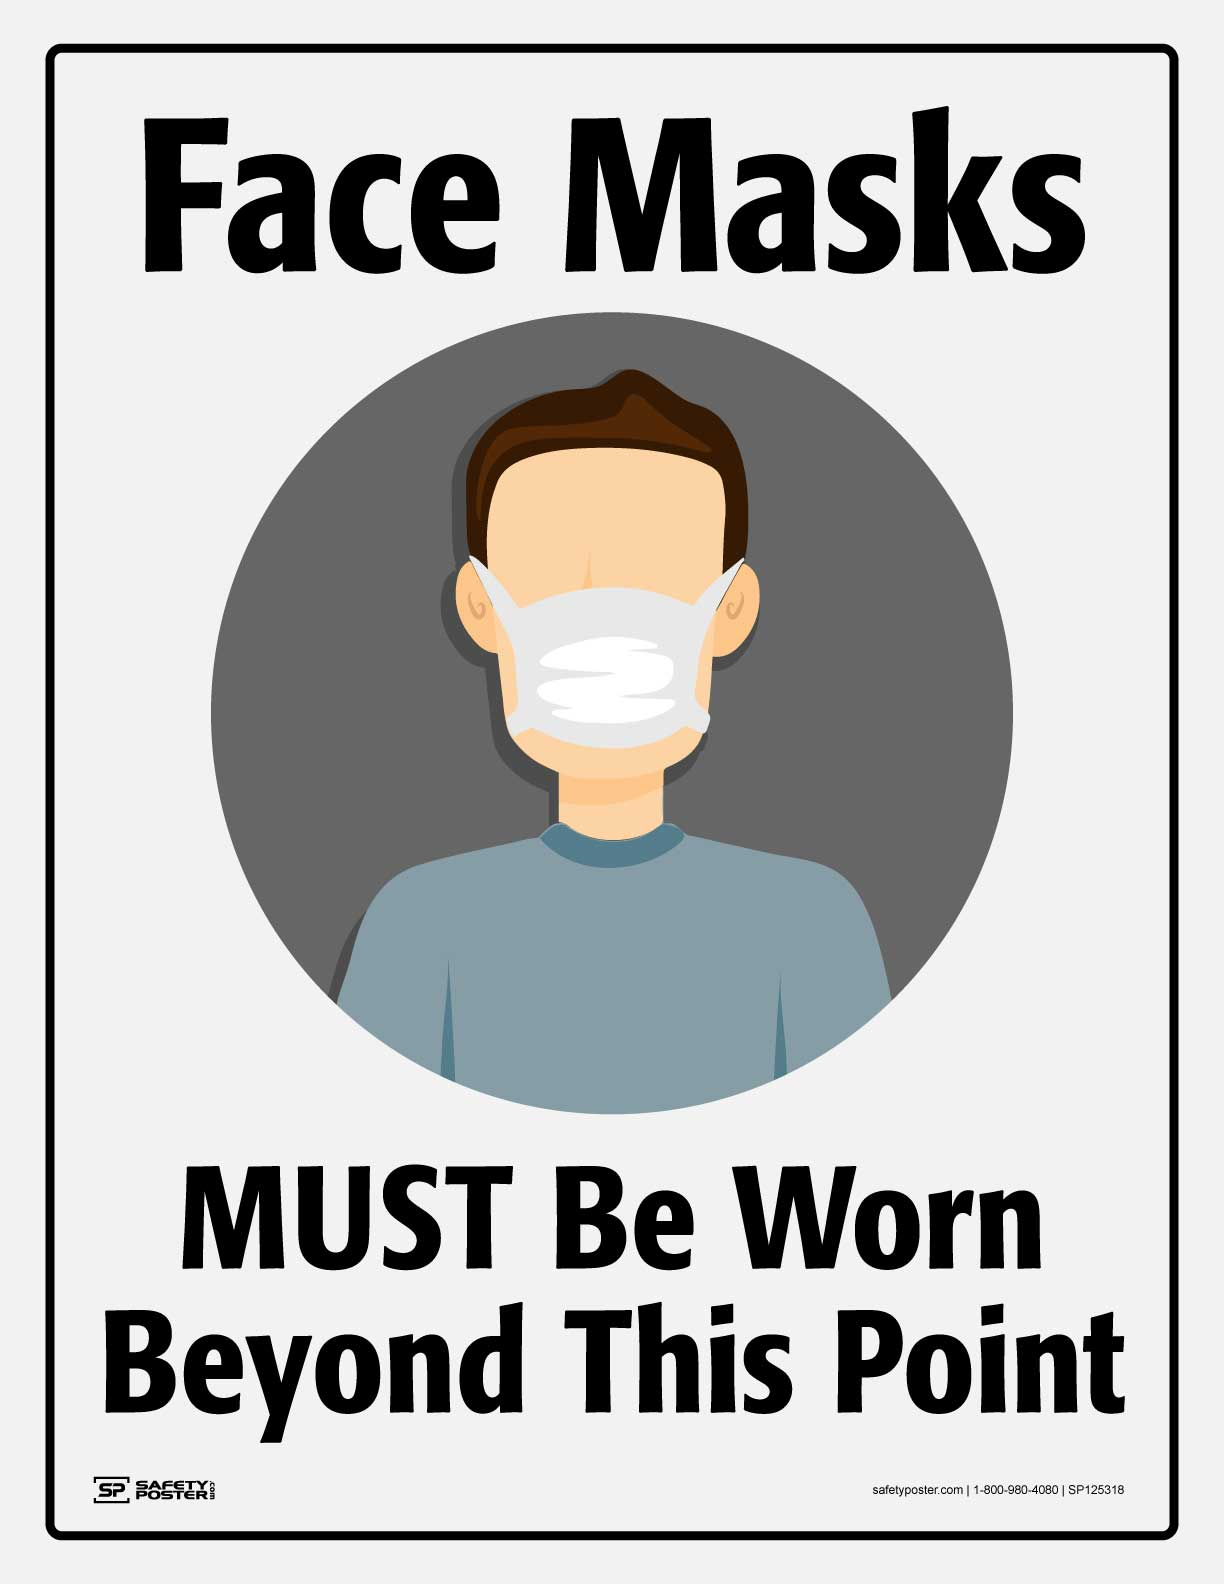 Face Masks MUST Be Worn Beyond This Point- Safety Poster